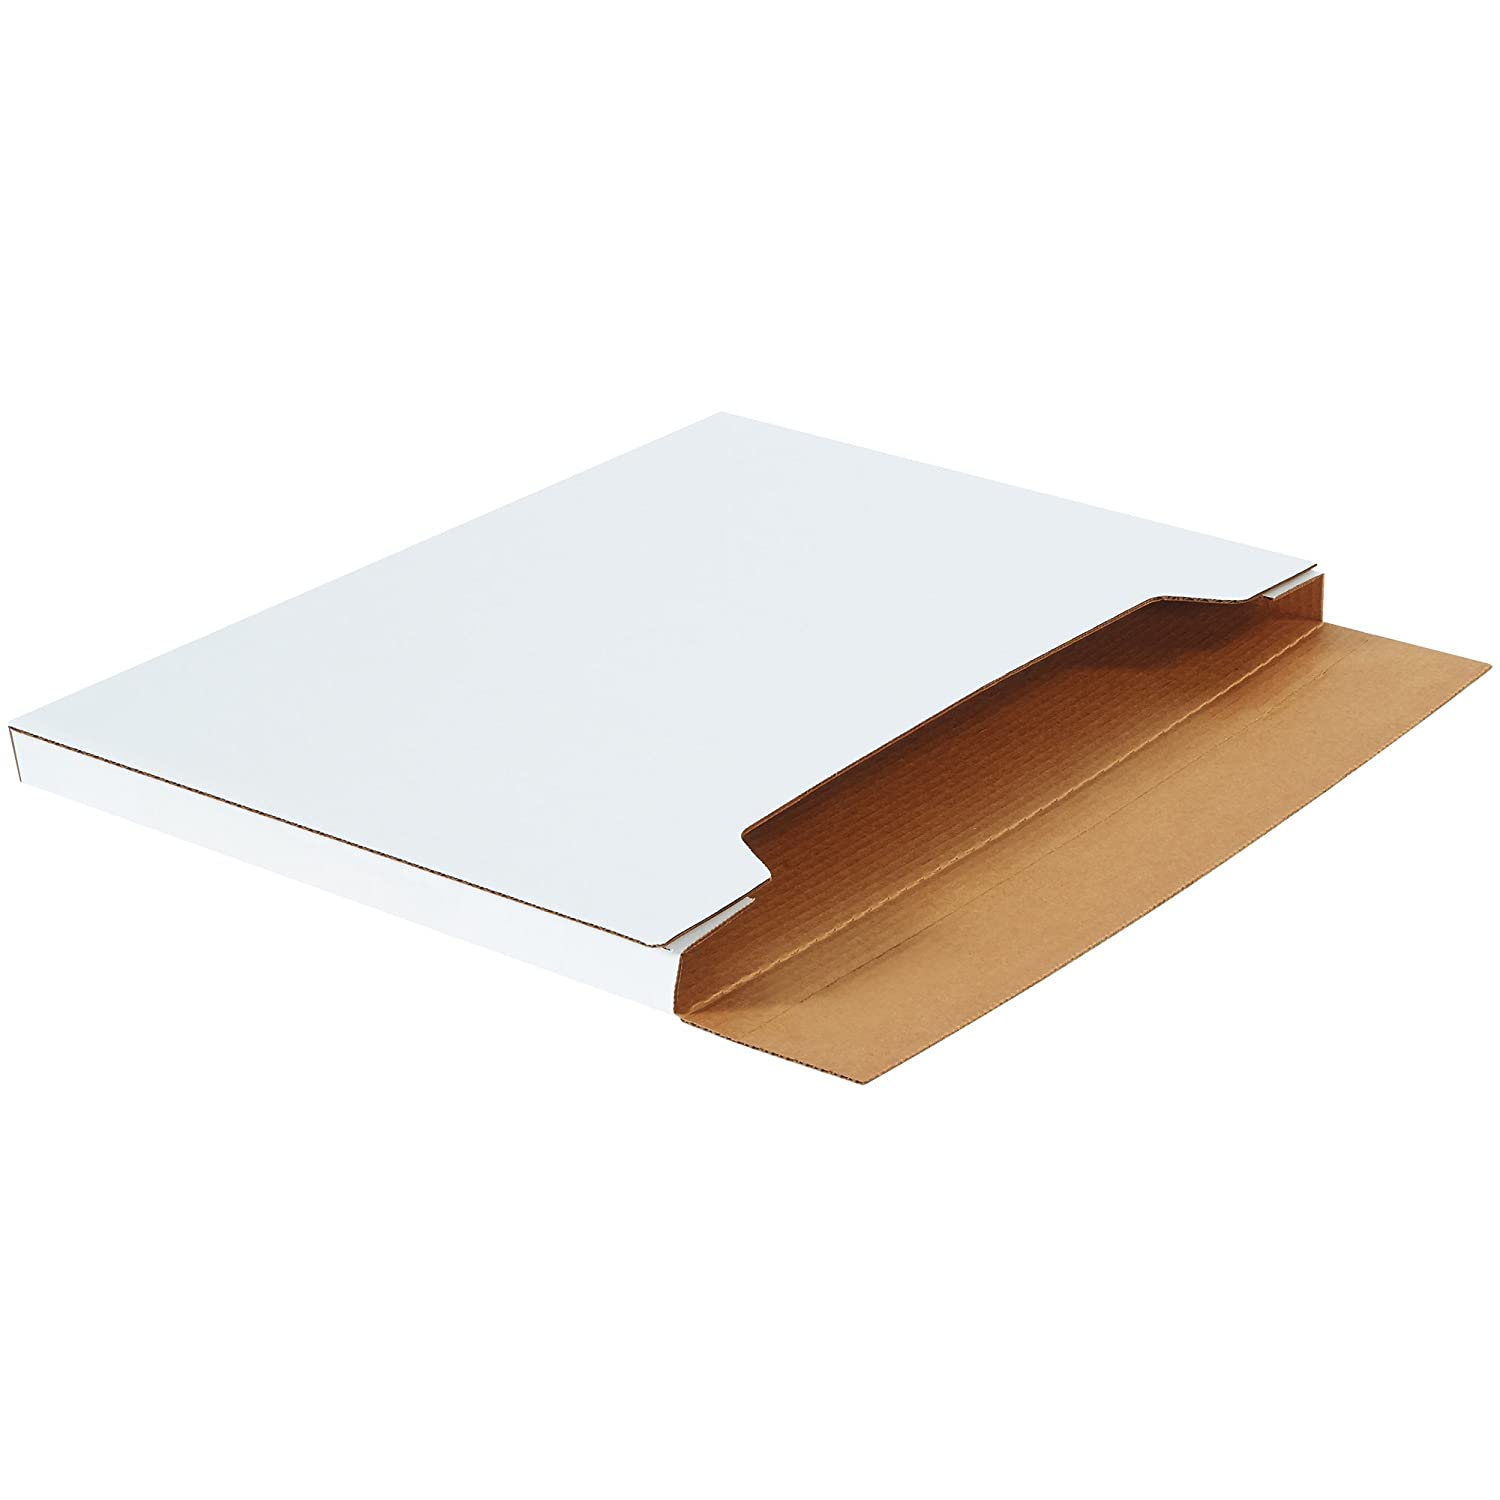 Boxes Fast Sales of SALE items from new works BFM30221 Jumbo White Seasonal Wrap Introduction Mailers Cardboard Fold-Over 30